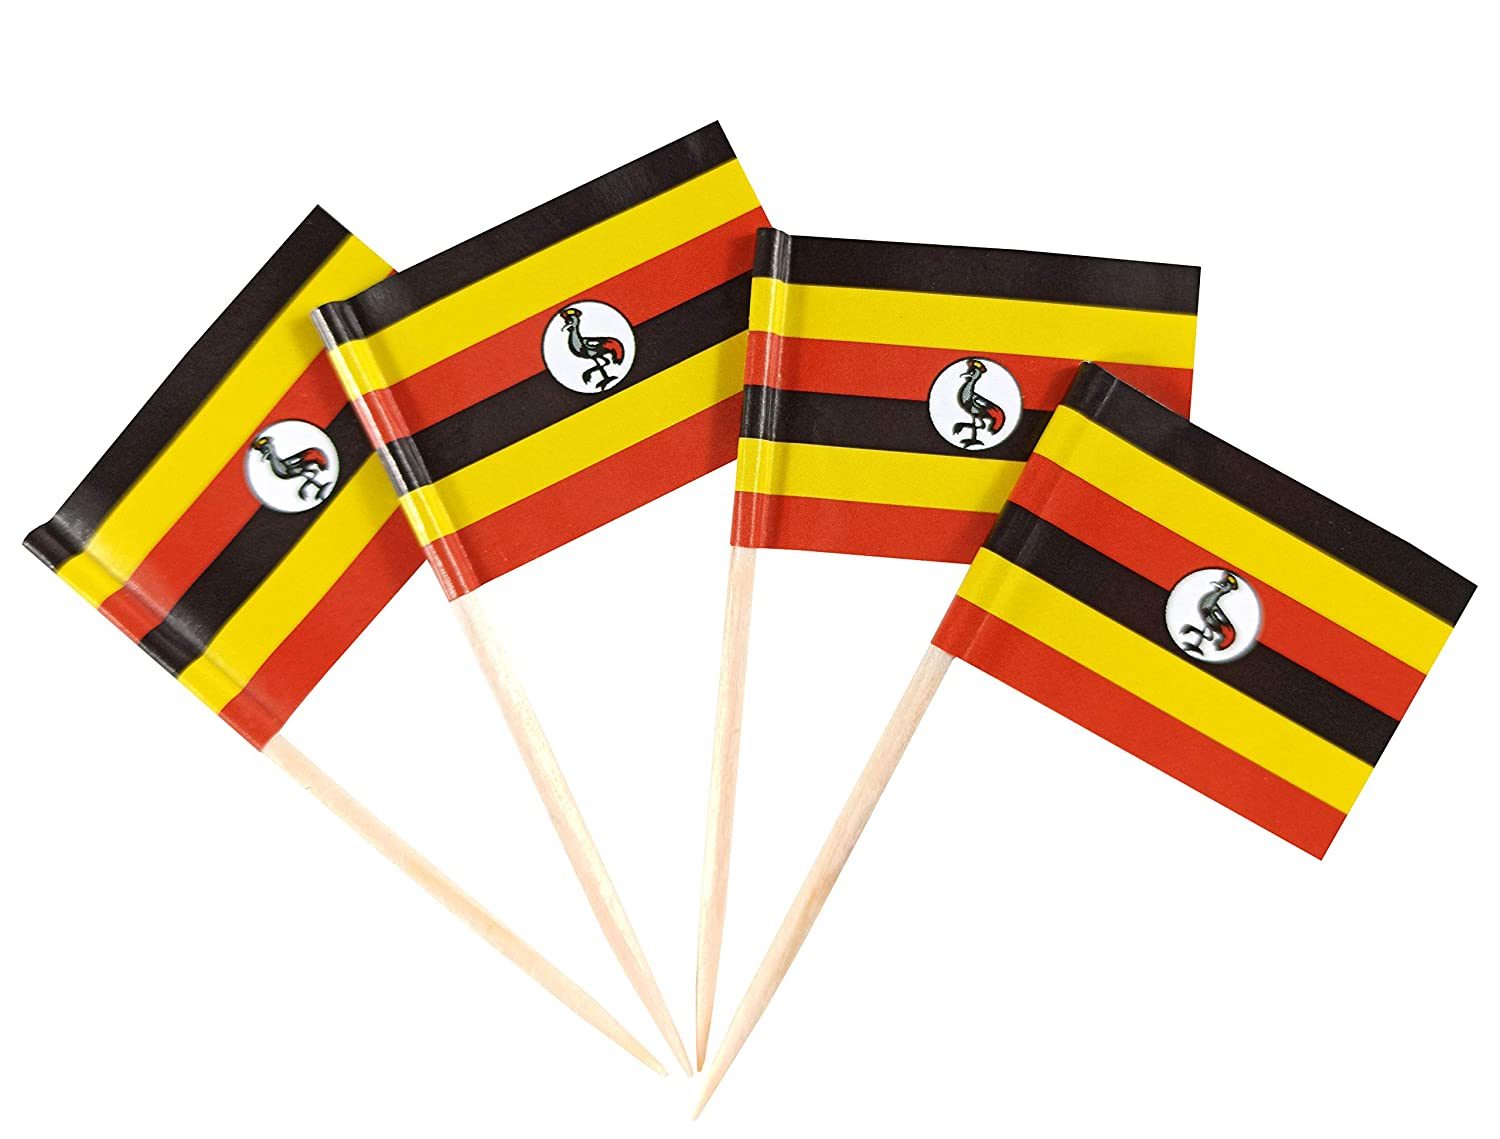 JBCD Uganda Flag Toothpicks Ugandans Flags Party Cupcake Topper Cocktail Tooth Picks Decorations Toothpick Flag Bar Picks Cup Cake Mini Small Paper Flags National Tiny Dinner Food Thin Sticks